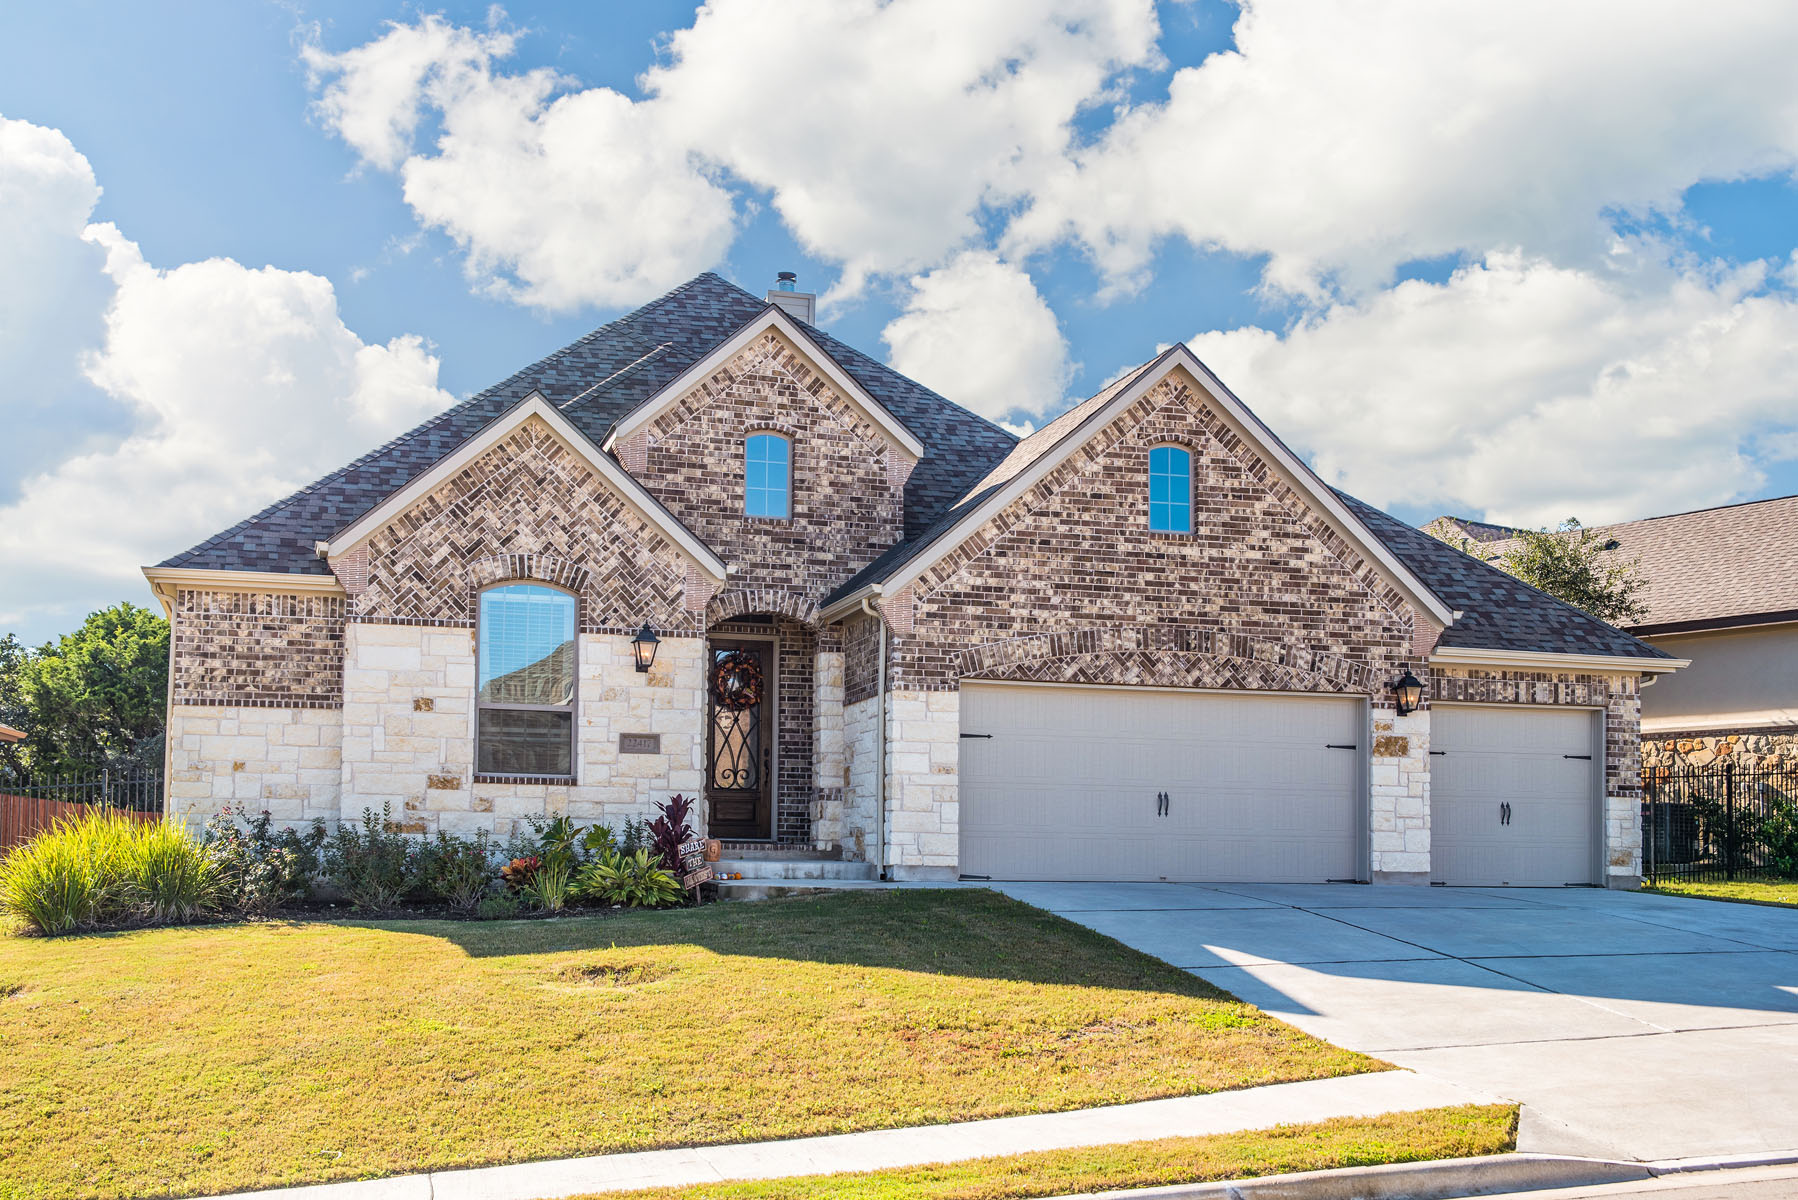 Vivienda unifamiliar por un Venta en Rare Single Story Home with All the Finishes 22417 Rock Wren Rd Spicewood, Texas, 78669 Estados Unidos